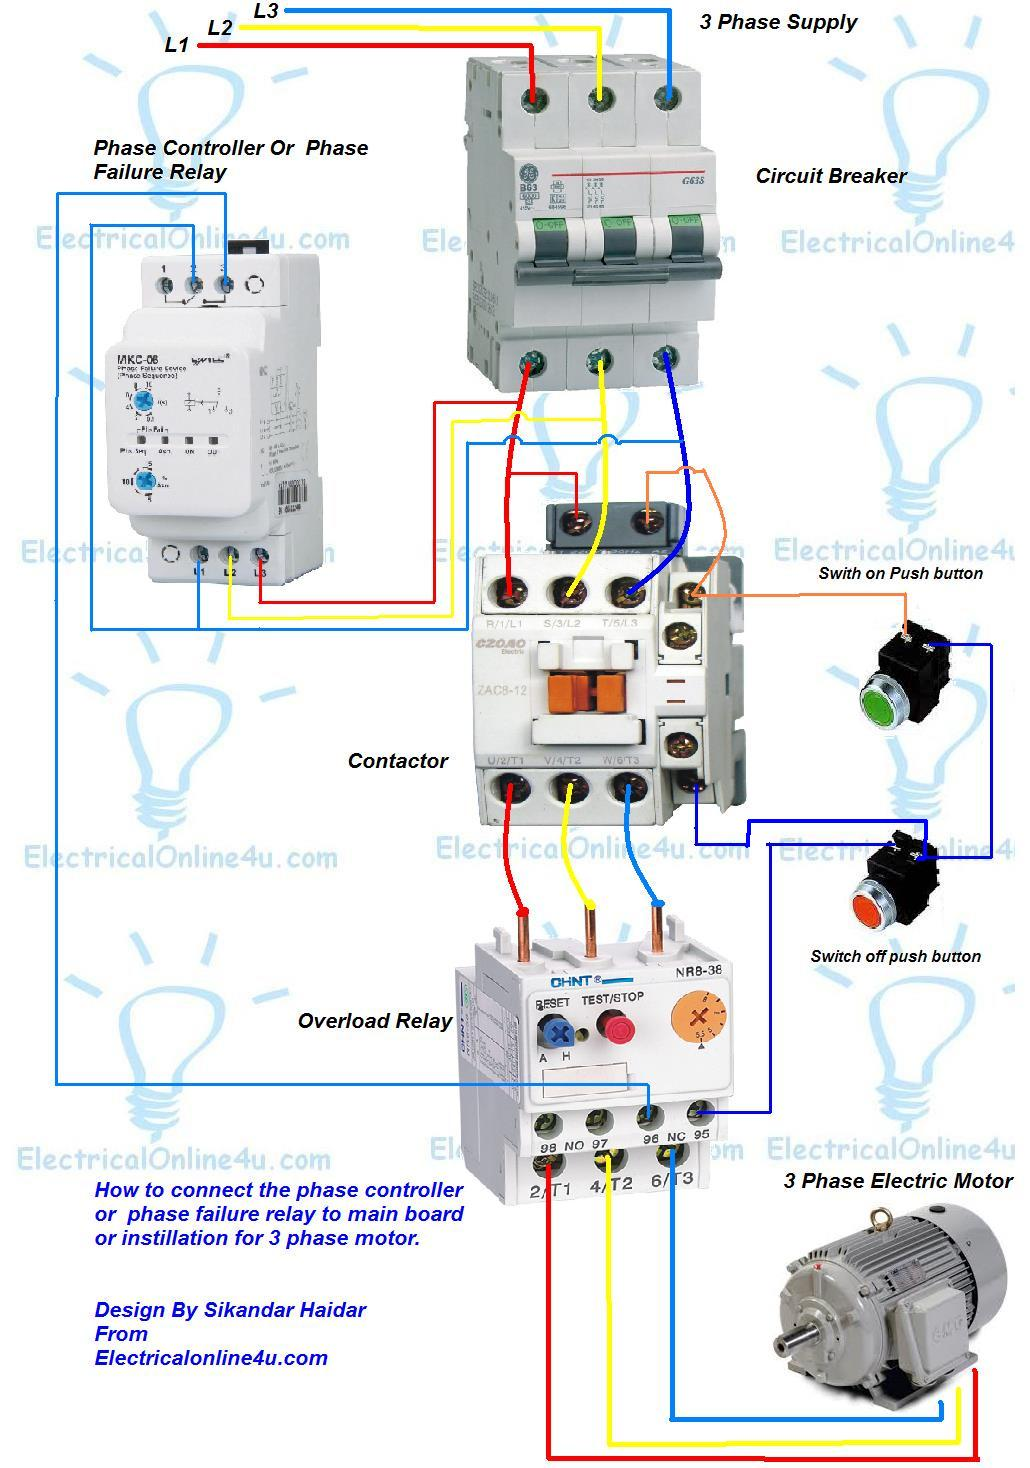 Phase%2Bfailure%2Brelay%2B %2Bphase%2Bcontroller%2Binstilaion%2Bin%2B3%2Bphase%2BMain%2Bboard%2Bor%2Bfor%2B3%2Bphase%2Bmotor phase controller wiring phase failure relay diagram electrical 3 phase contactor with overload wiring diagram at crackthecode.co